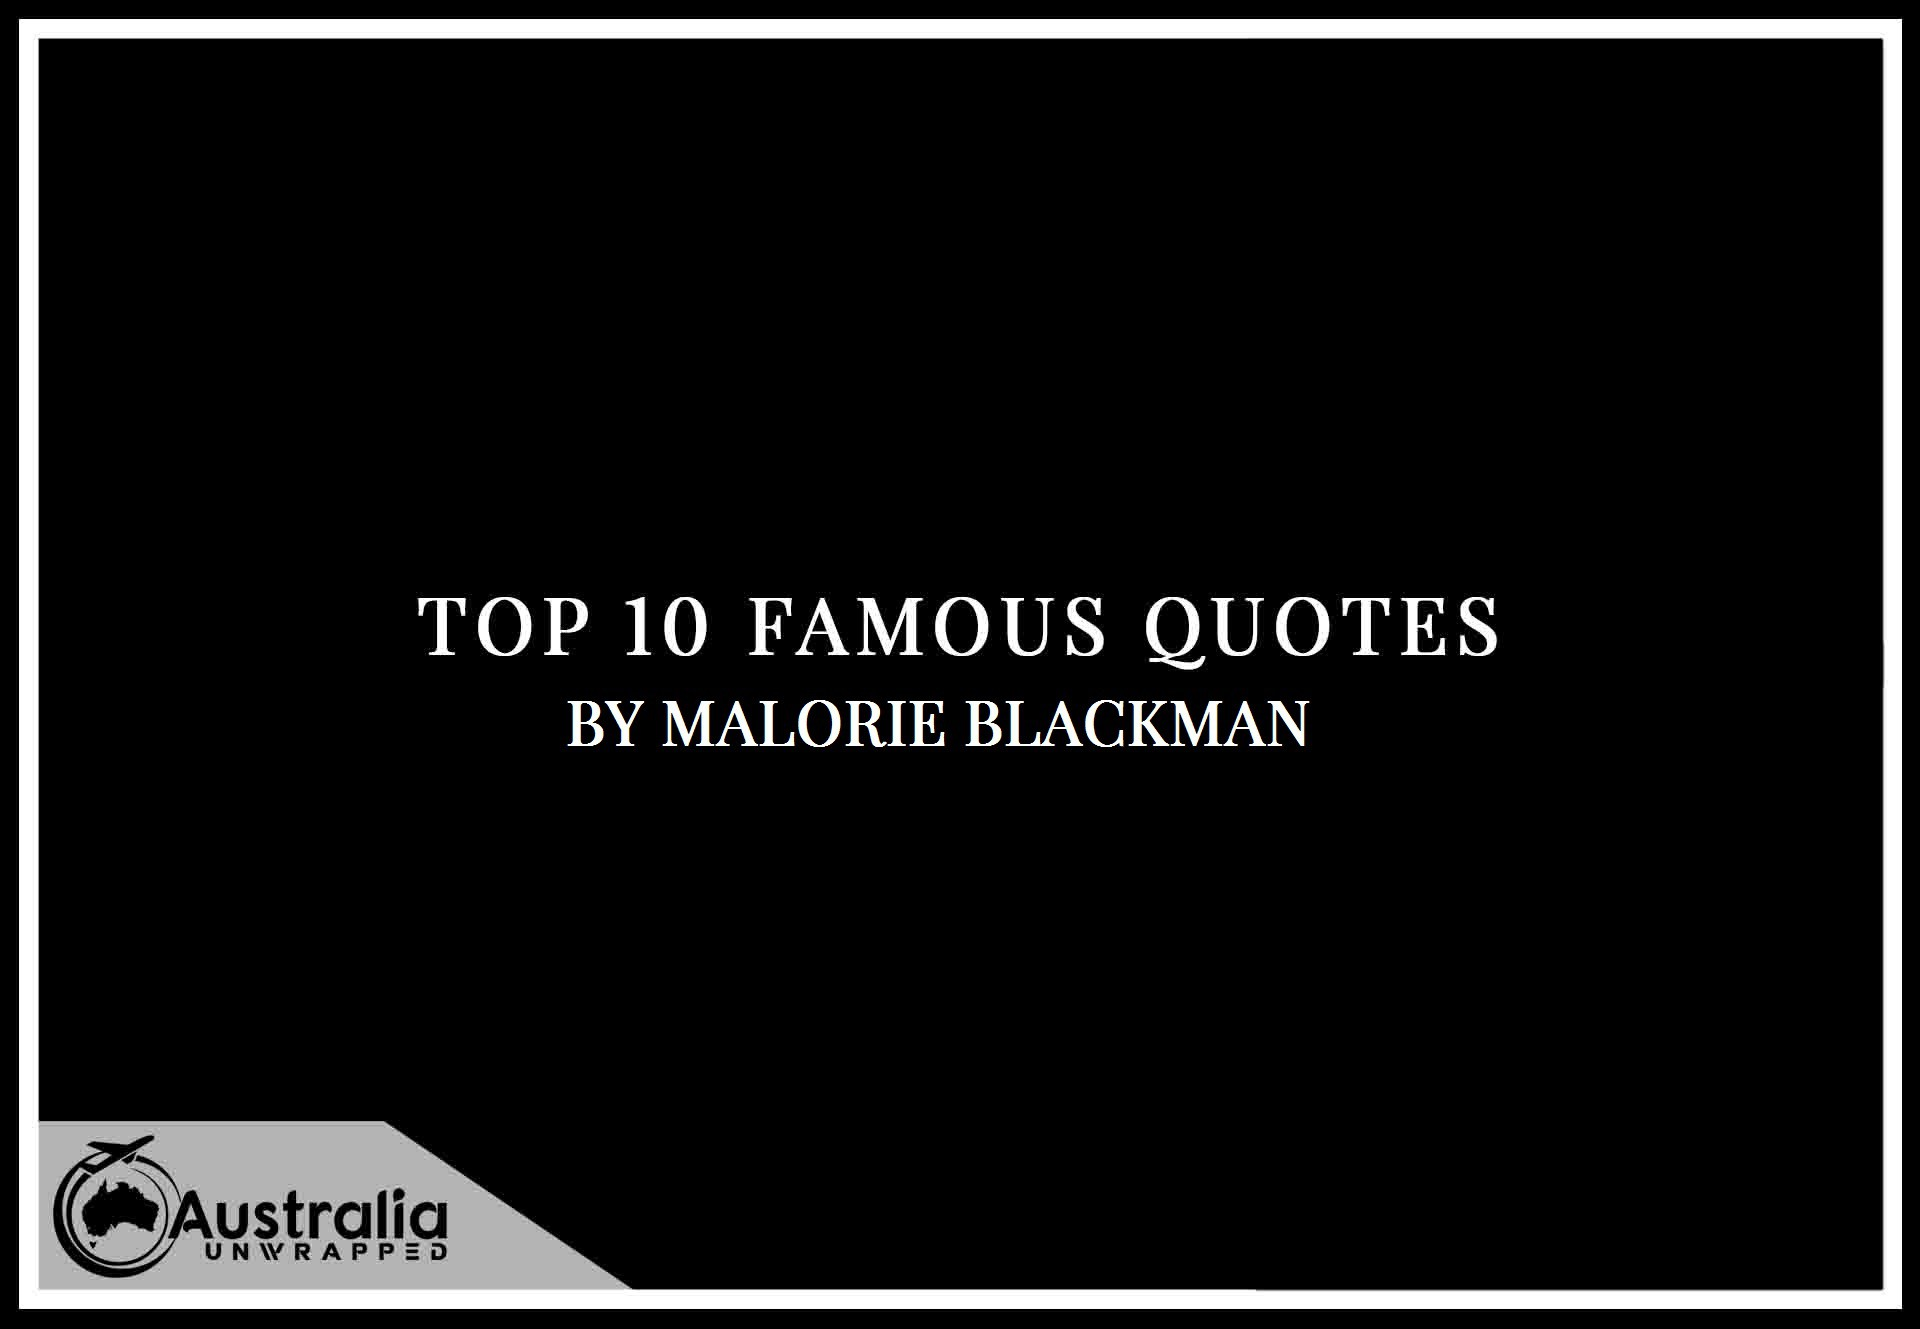 Malorie Blackman's Top 10 Popular and Famous Quotes